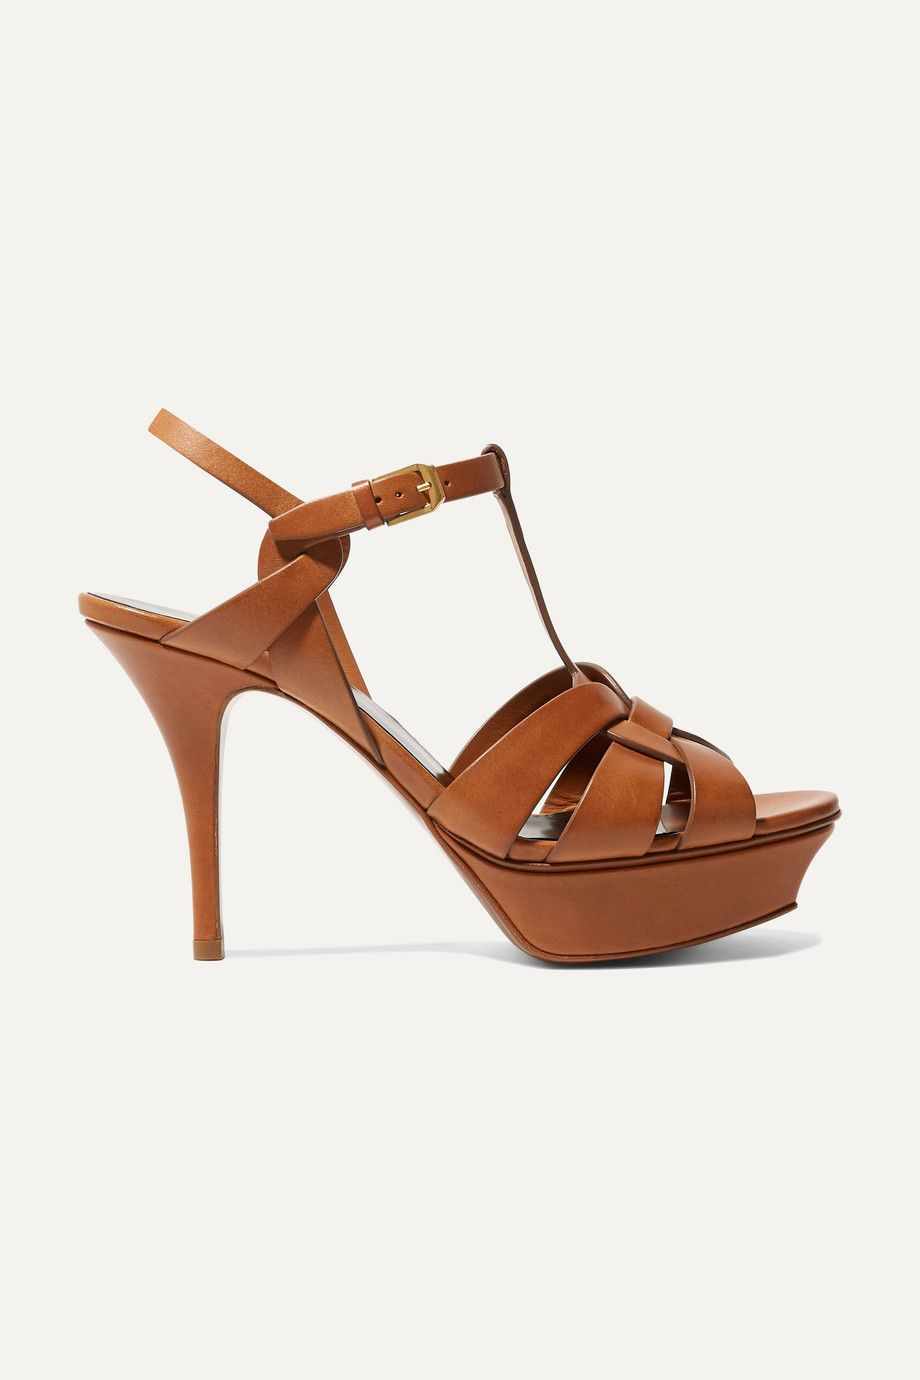 saint-laurent-tribute-leather-platform-sandals